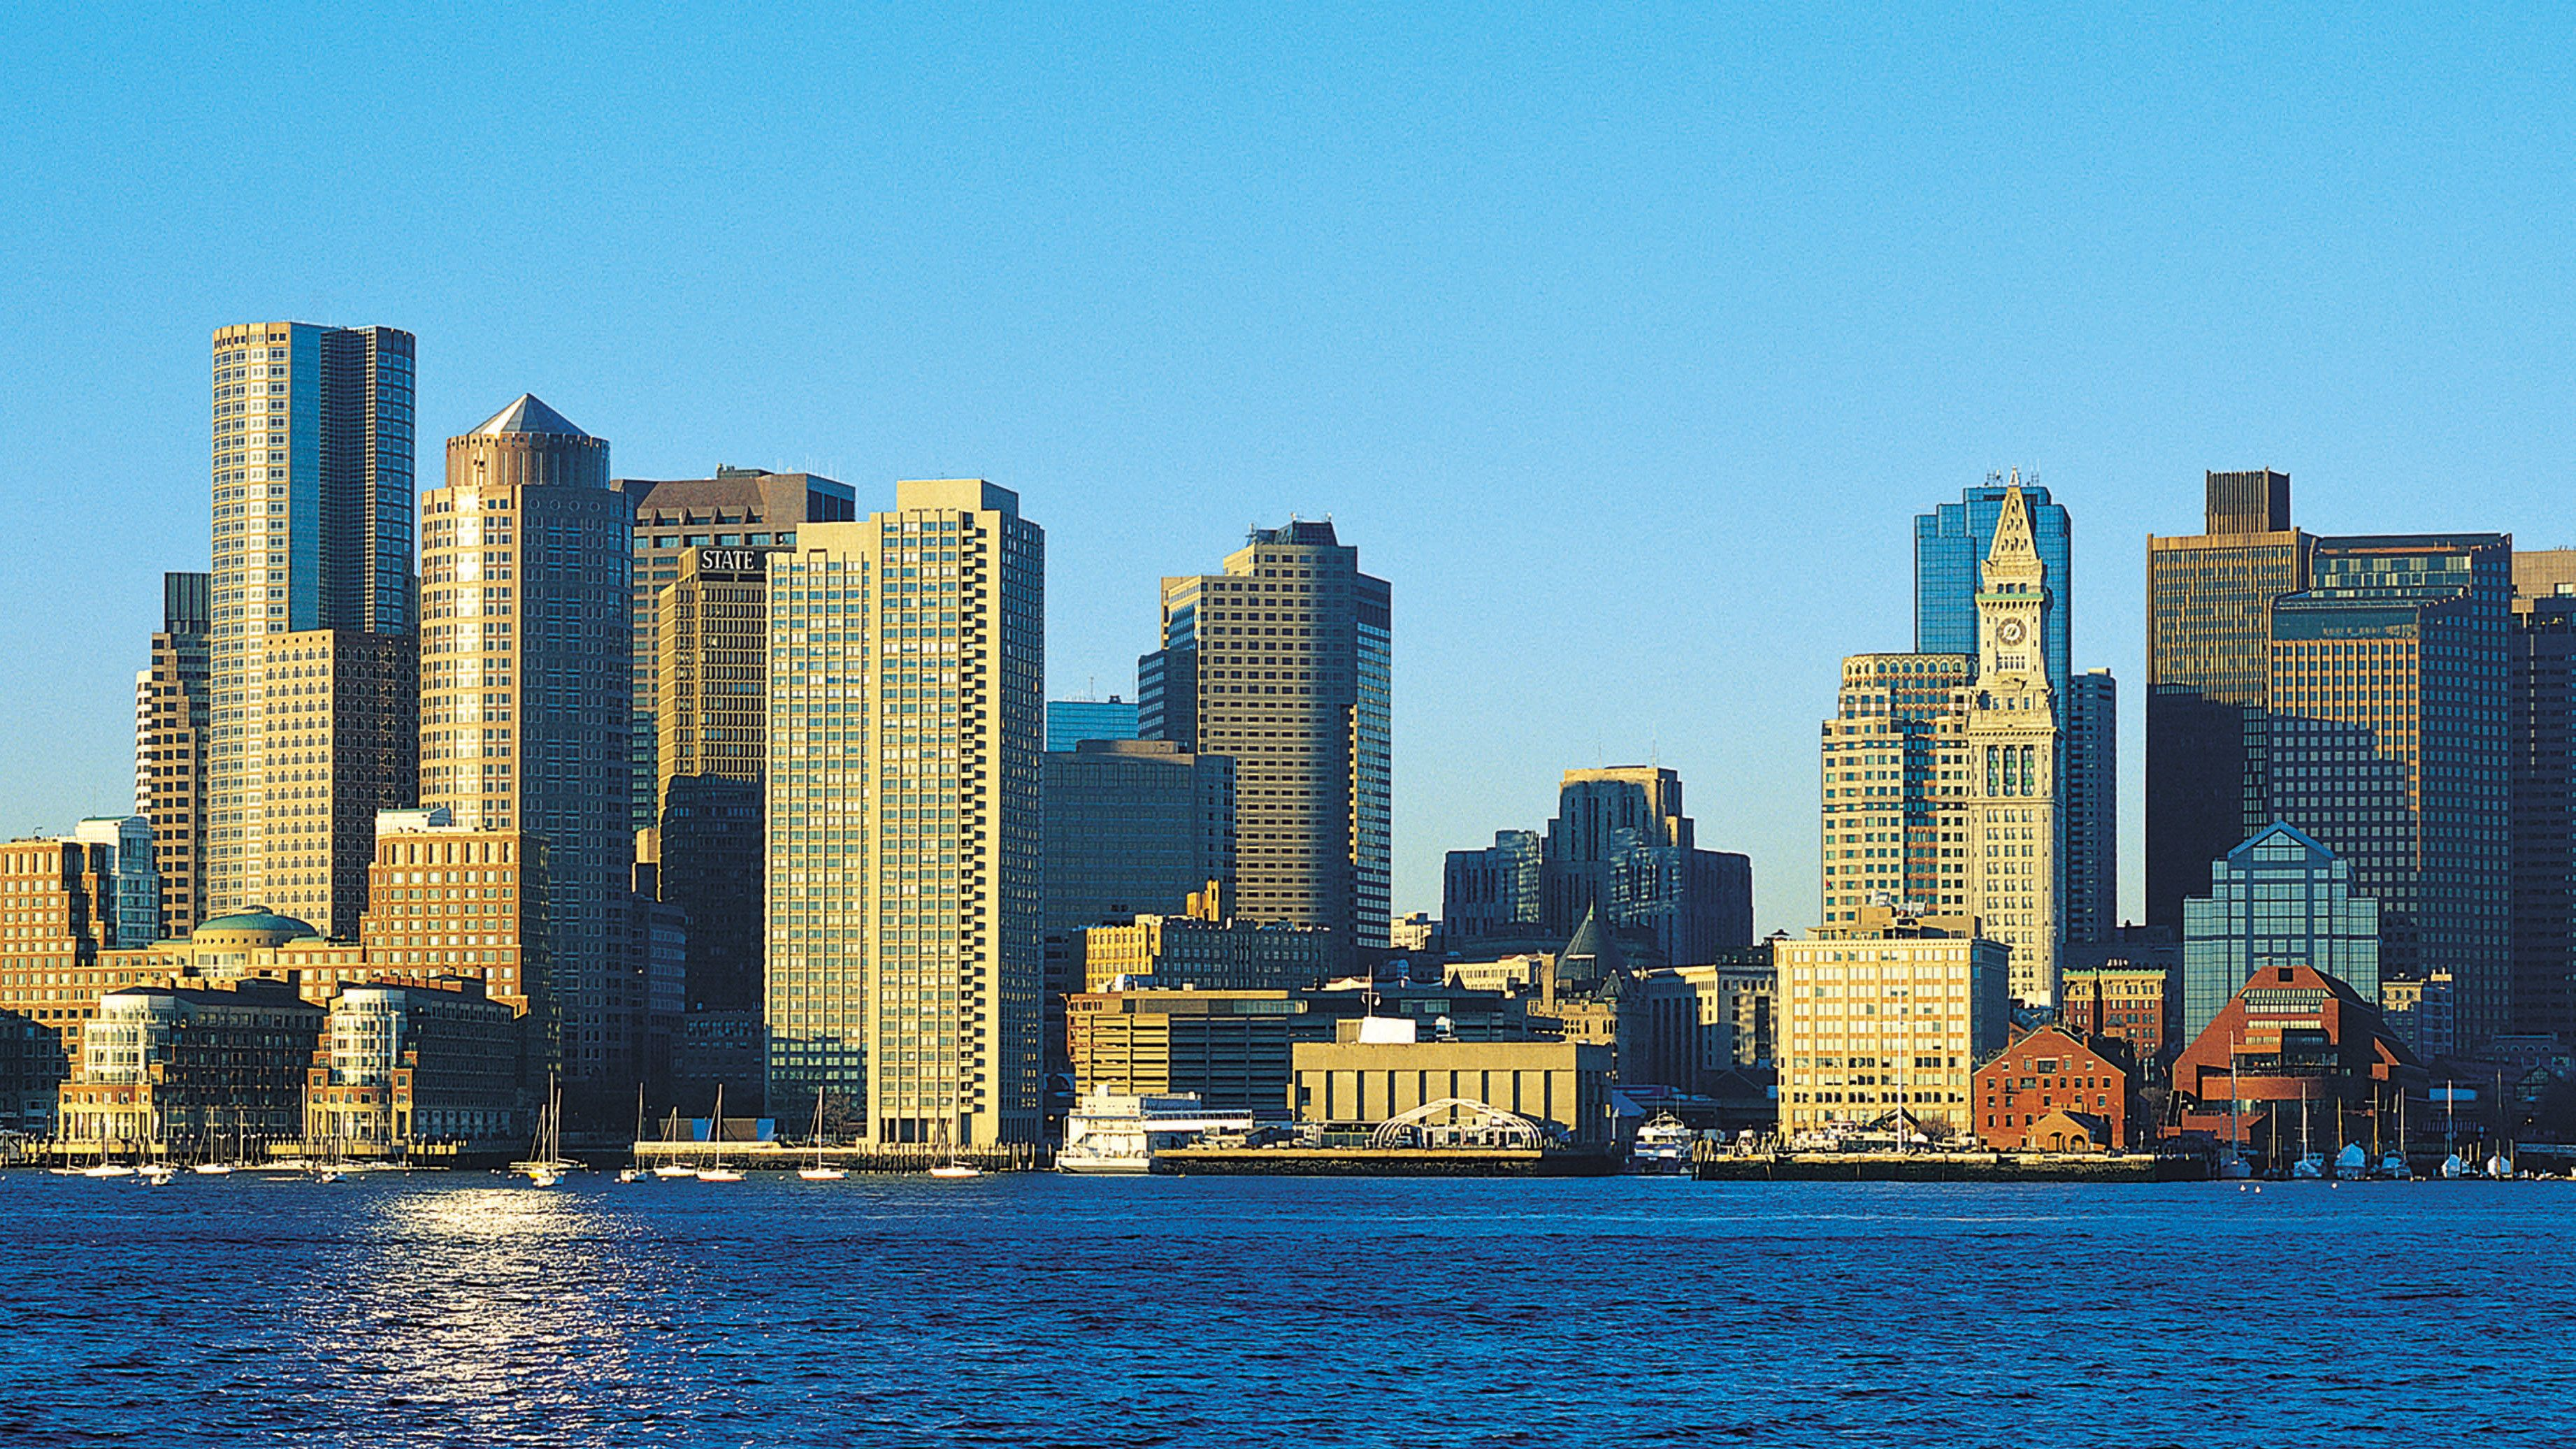 Sunlight hitting the tall buildings that line the coast of Boston Harbor